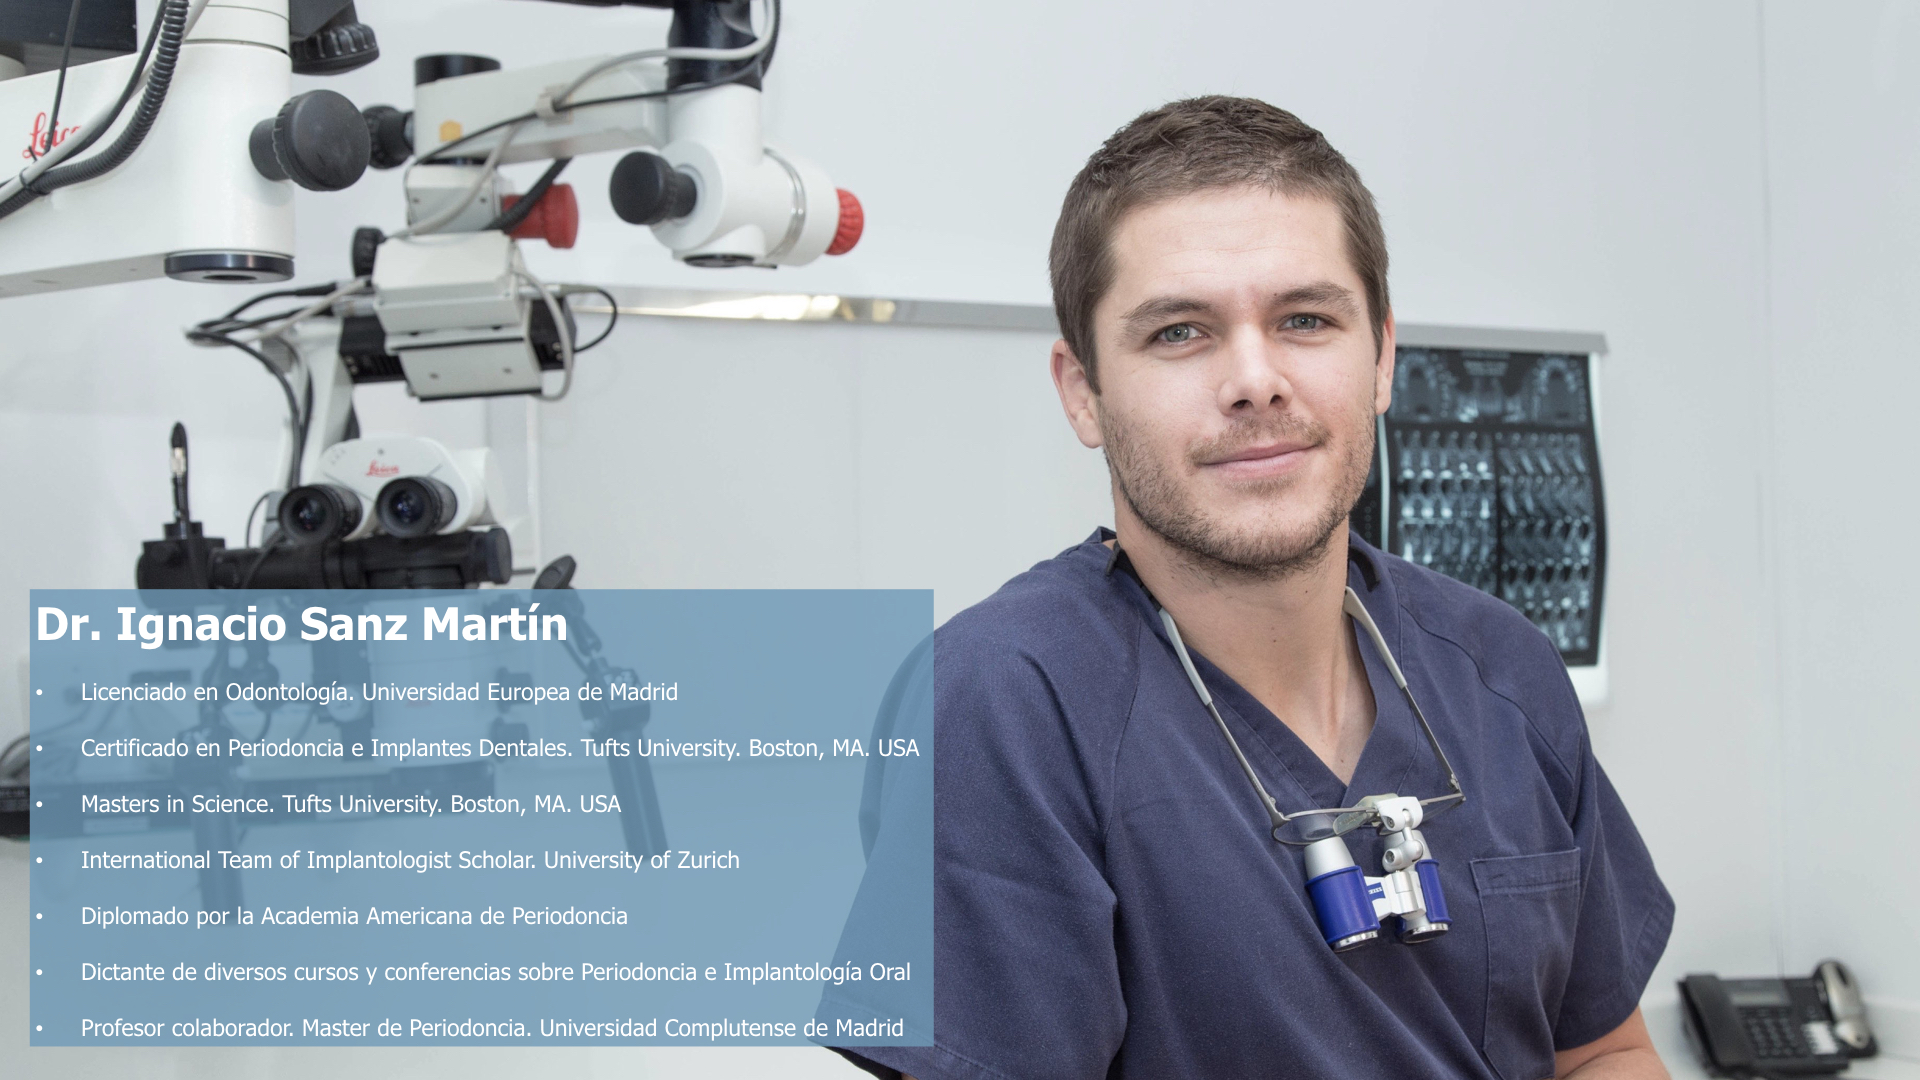 doctores.004-1